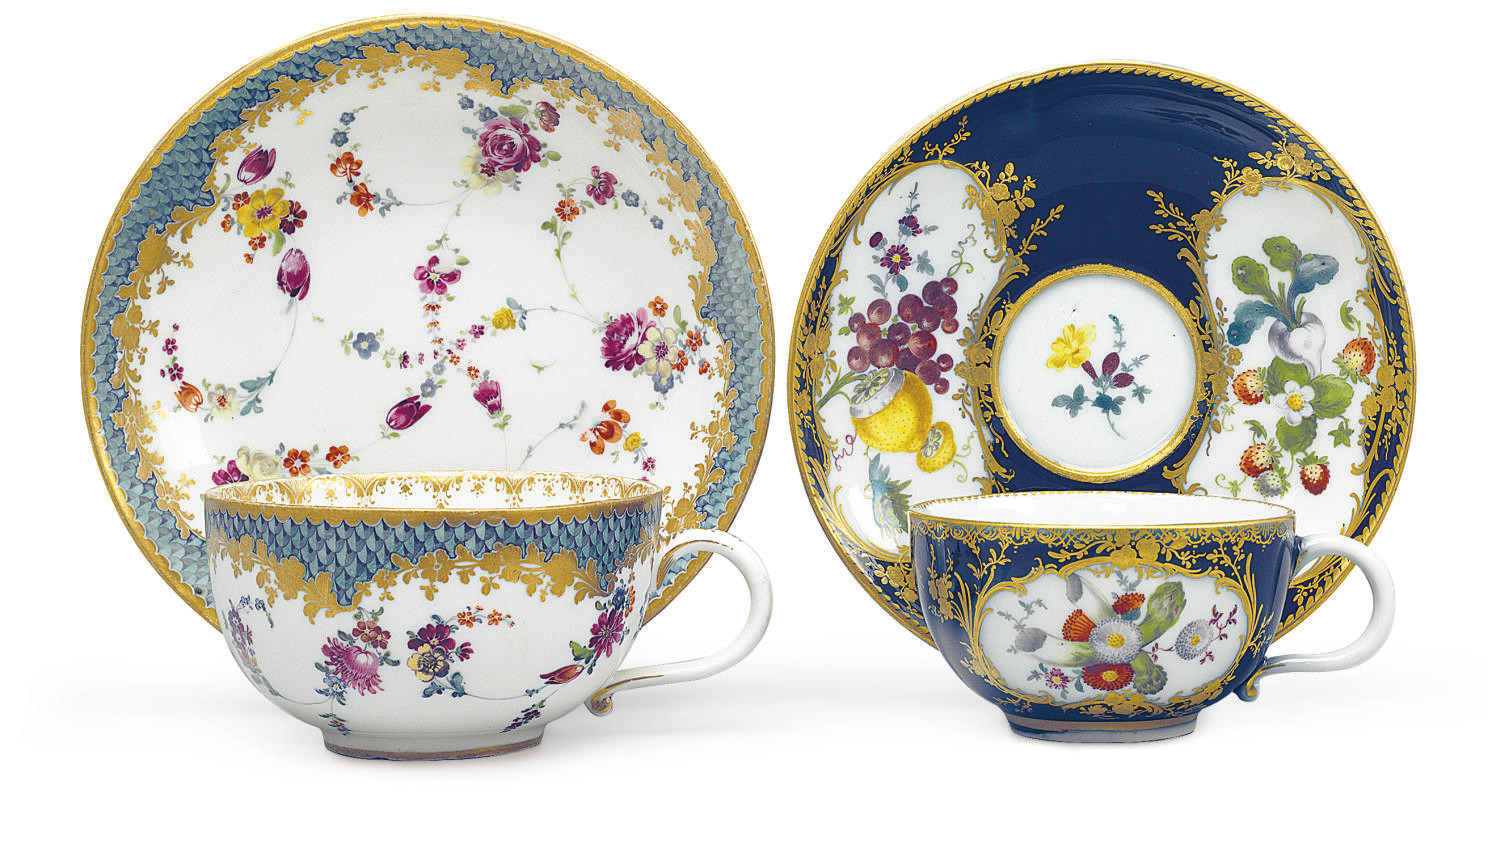 TWO MEISSEN TEACUPS AND SAUCER